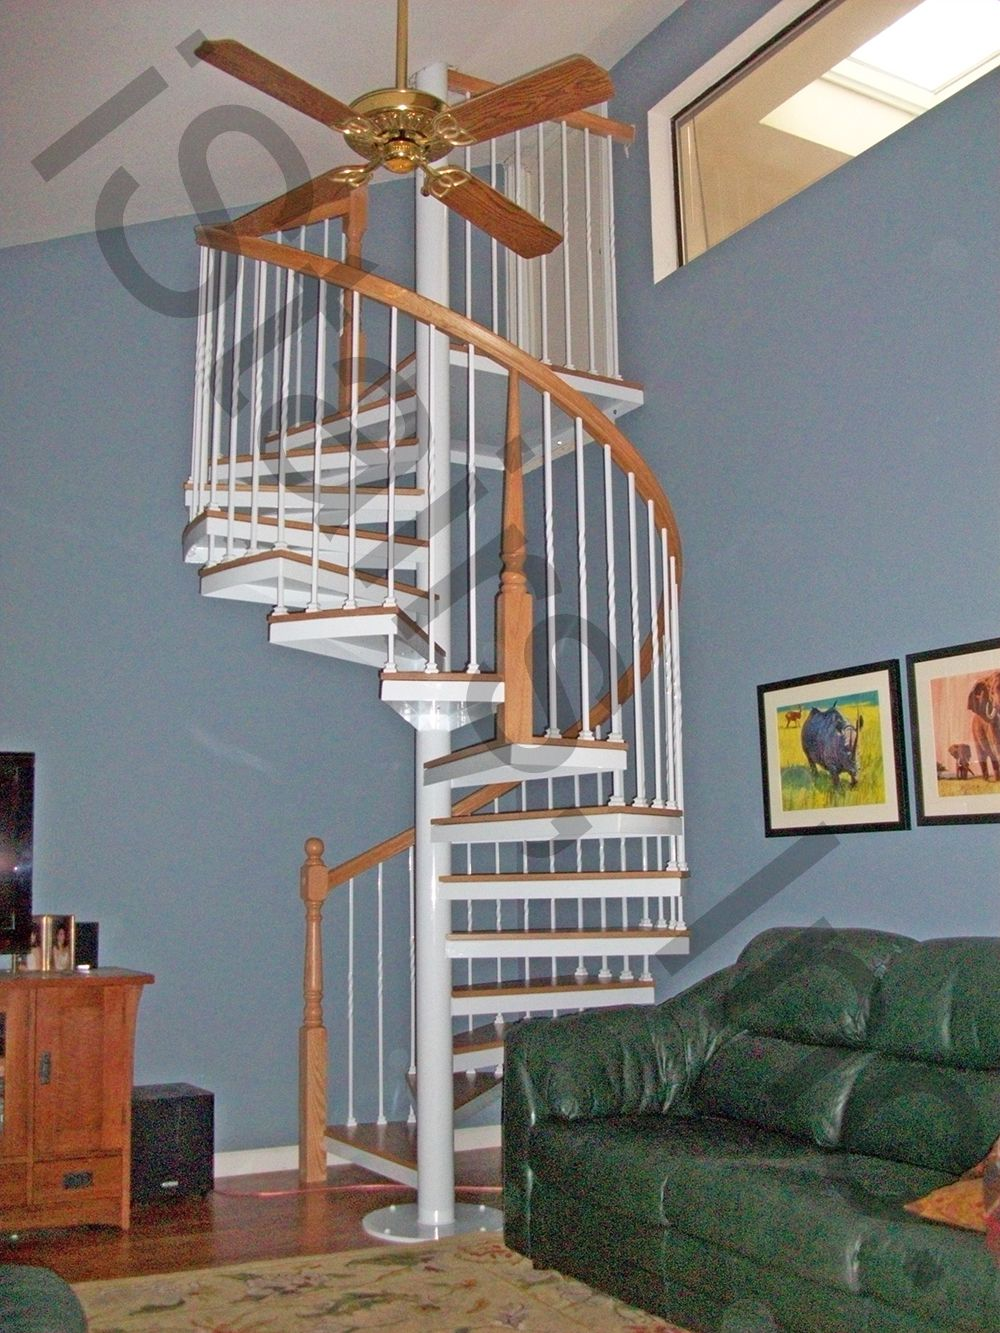 Paint grade w/oak rail, posts, treads & ceiling fan sprial staircase